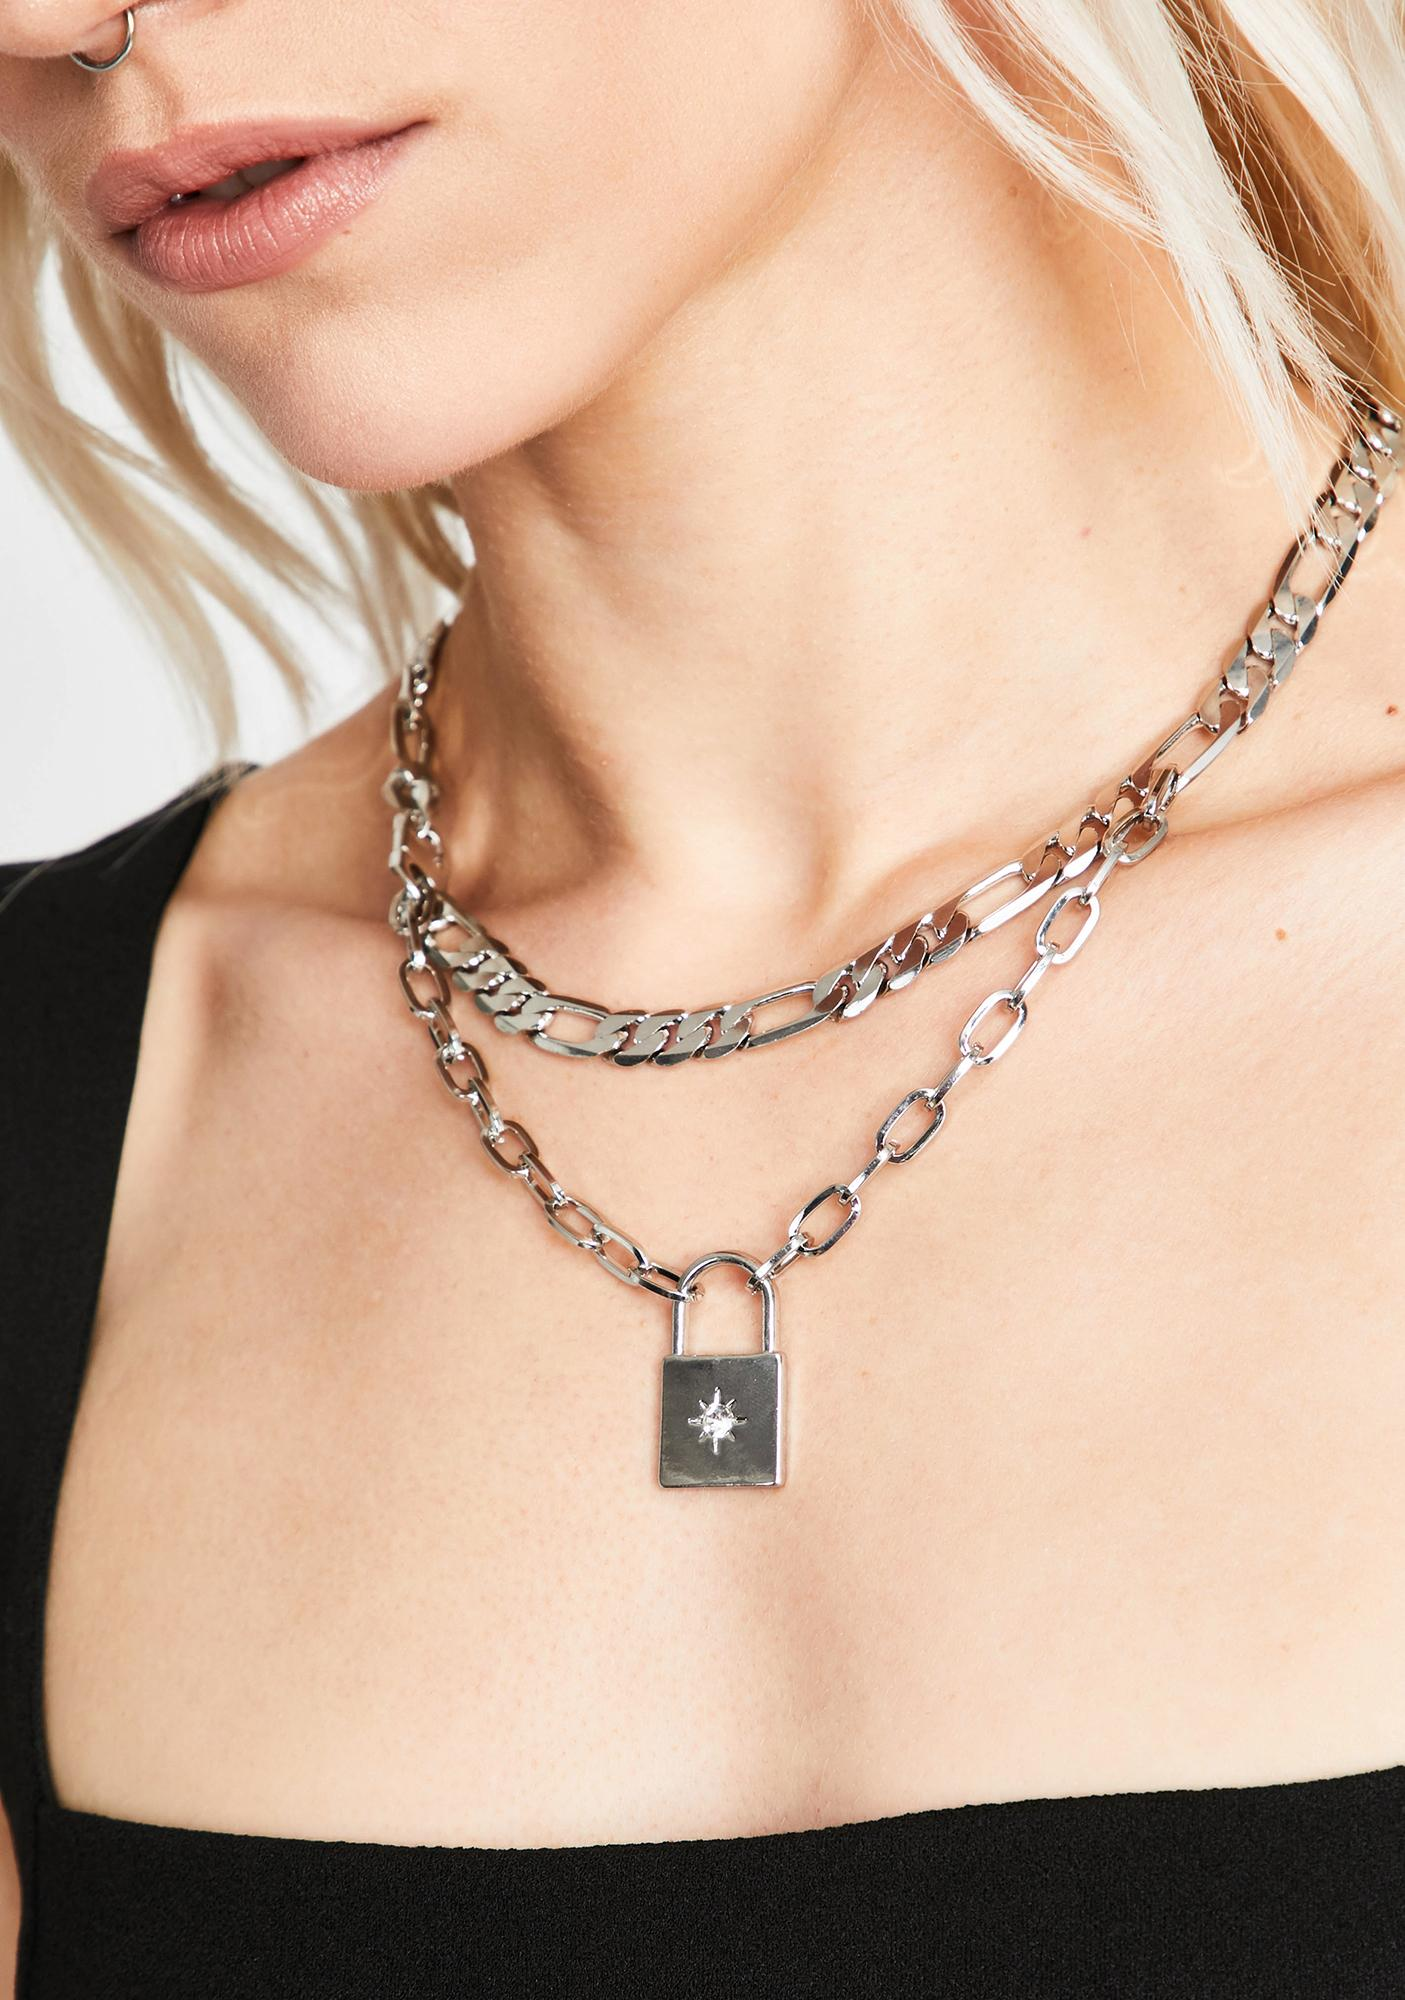 Starlust Lockdown Chain Necklace